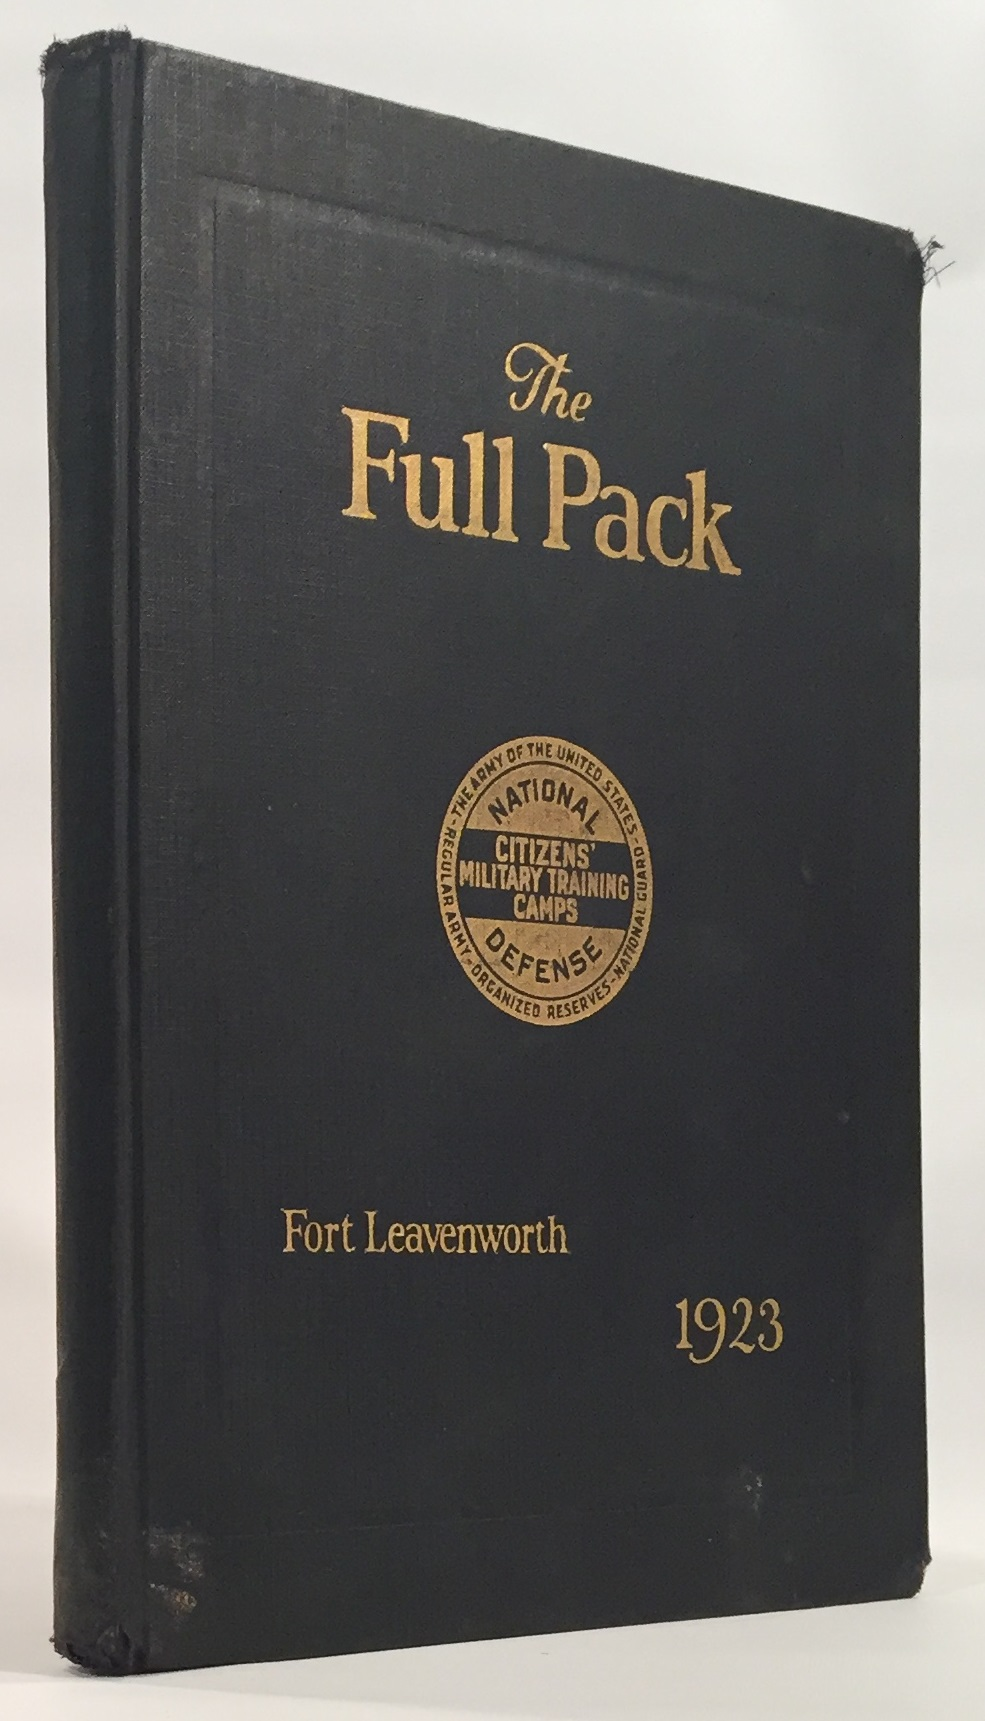 Image for The Full Pack Seventh Corps Area Fort Leavenworth, Kansas`